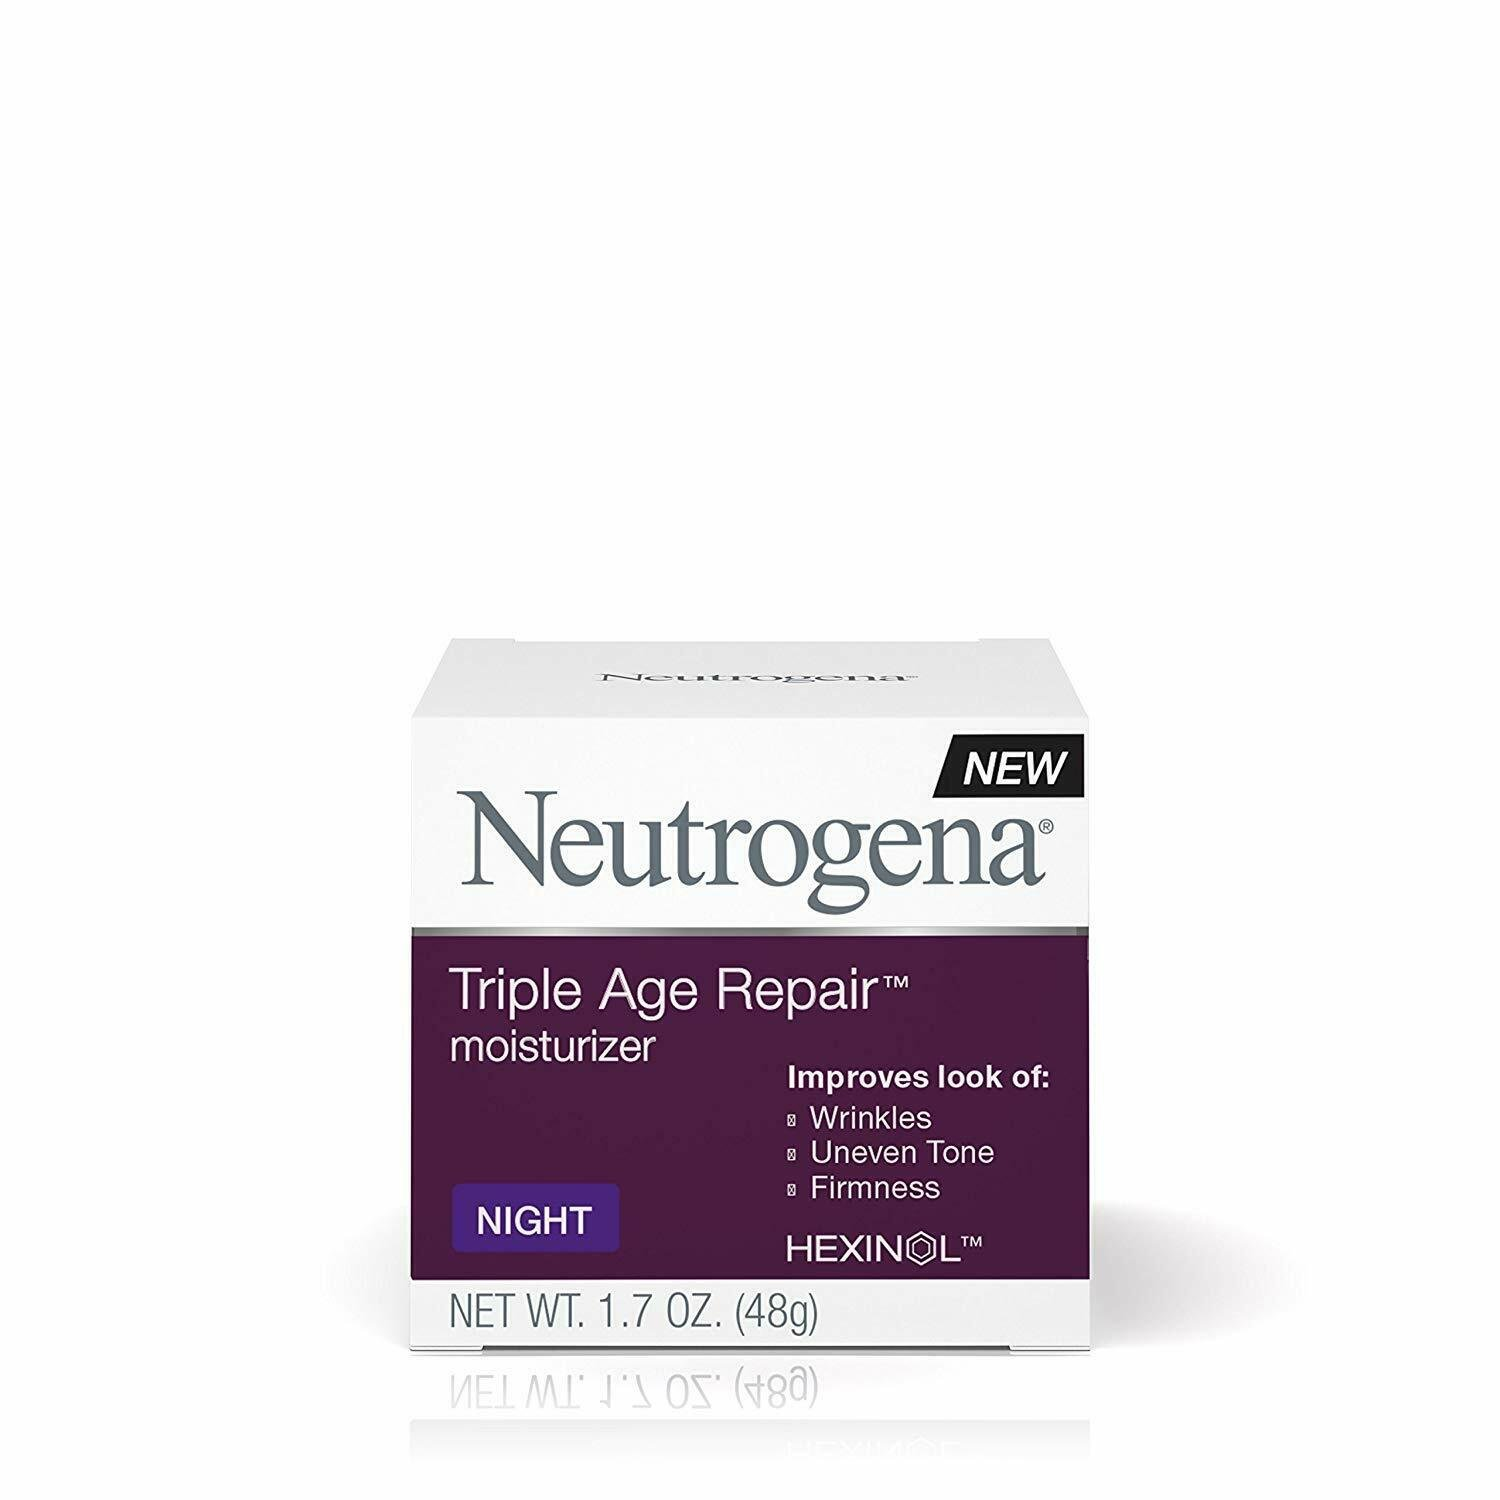 Neutrogena Triple Age Repair Night Moisturizer (1.7 oz)